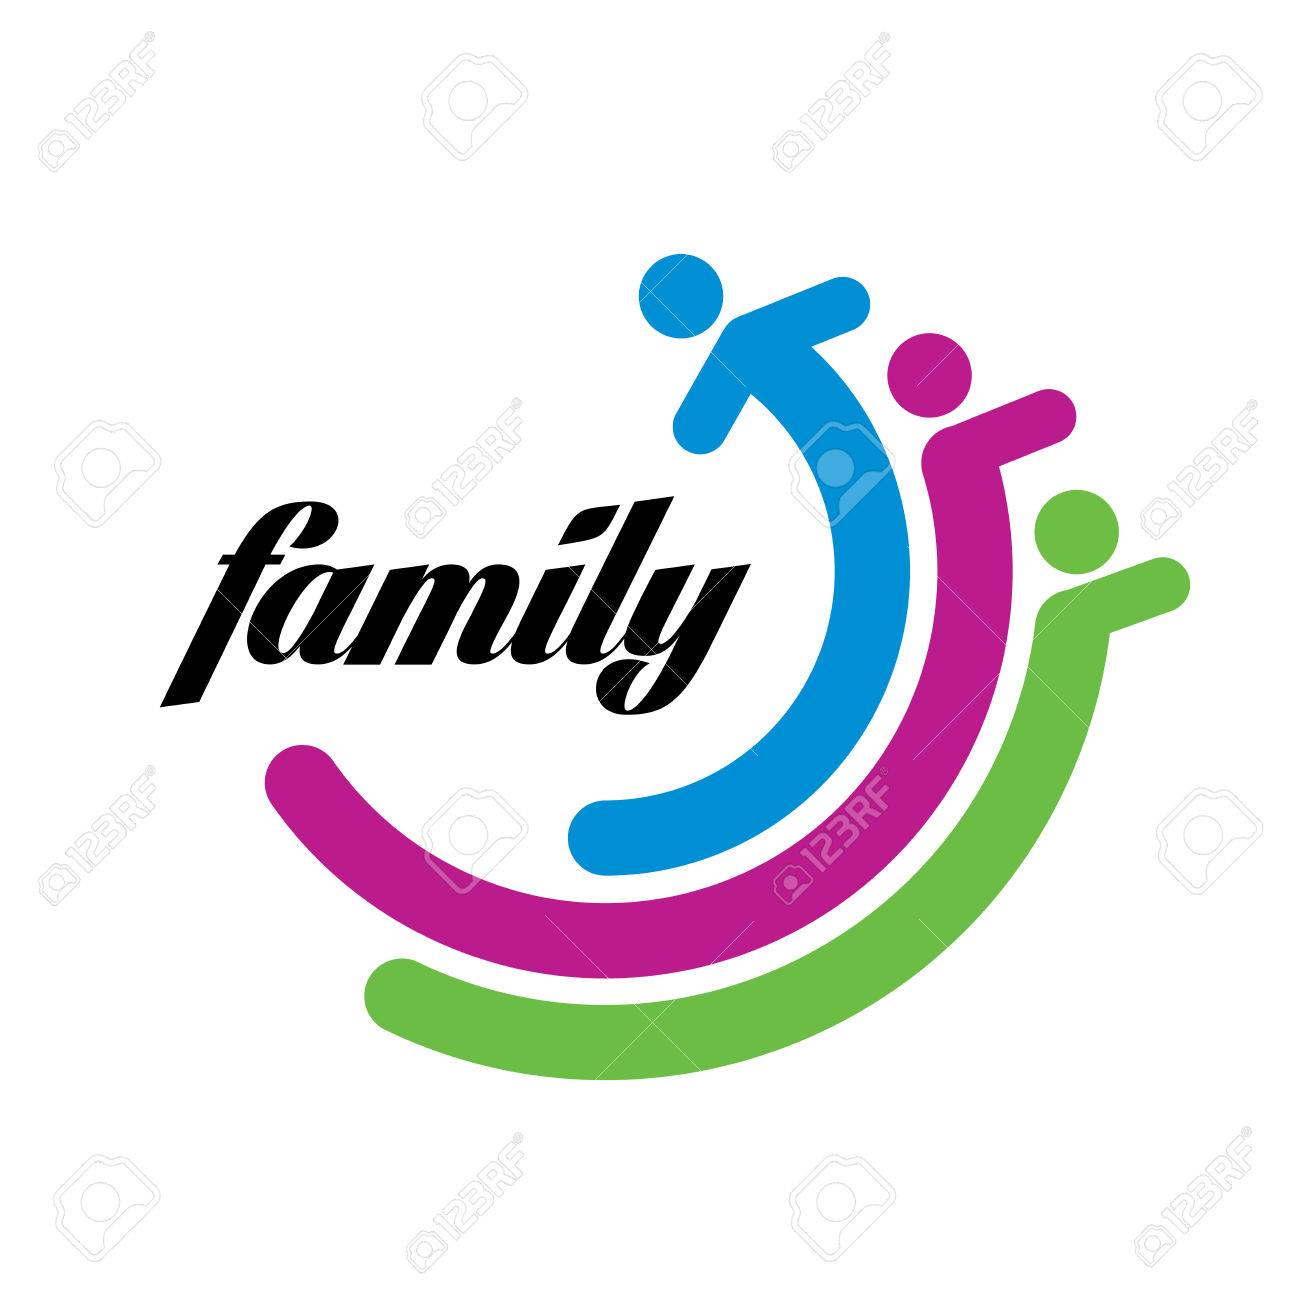 17 045 family logo stock vector illustration and royalty free family rh 123rf com free vector illustrations software free vector illustrations software